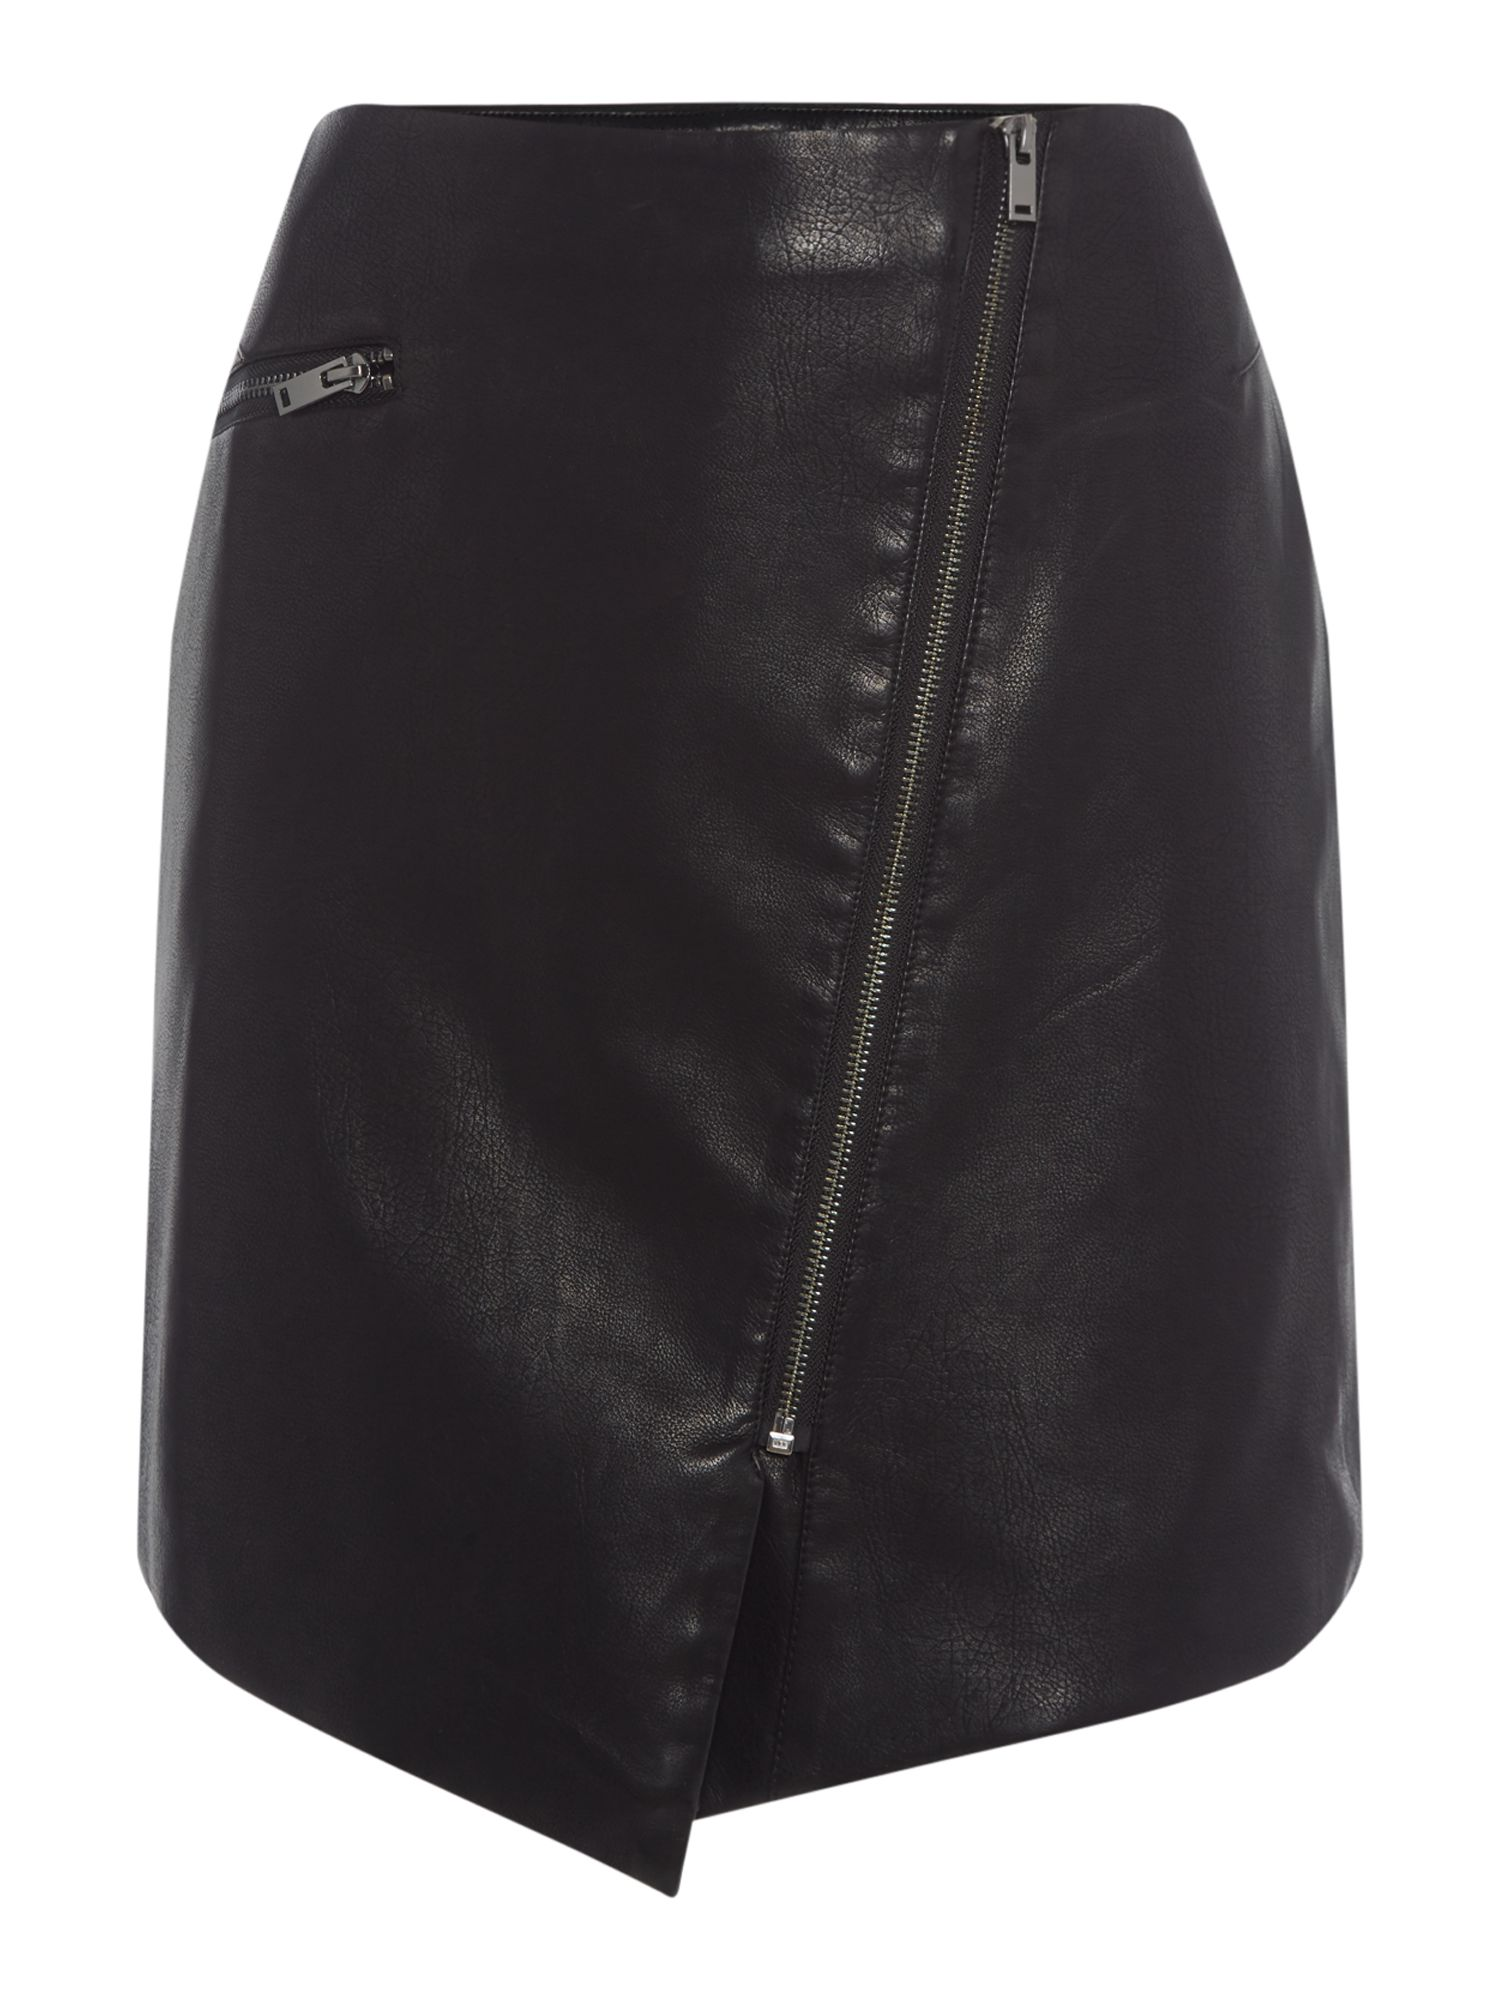 Label Lab Asymmetric Pu Mini Skirt, Black